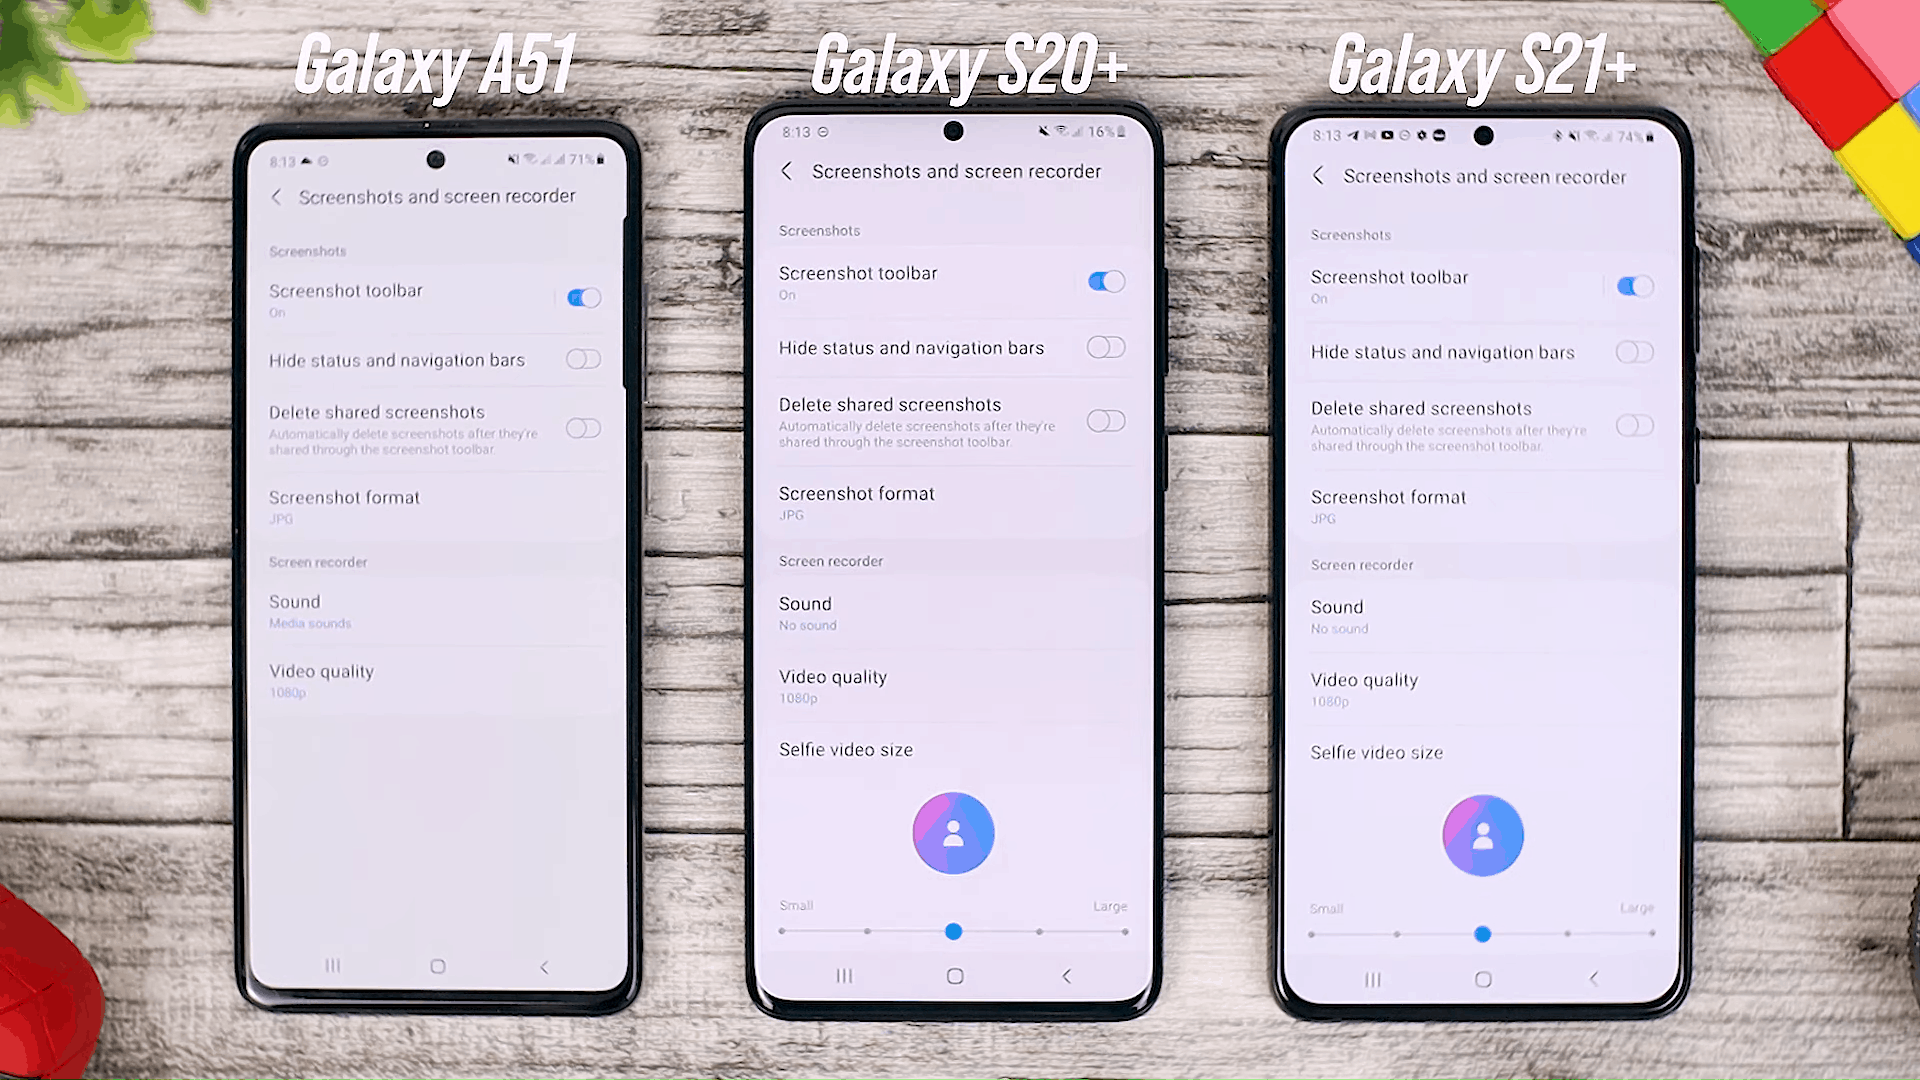 Screen Recorder Option - One UI 3.0 features of Samsung Galaxy A51 and its comparison with the Galaxy S20+ and One UI 3.1 on the Galaxy S21+